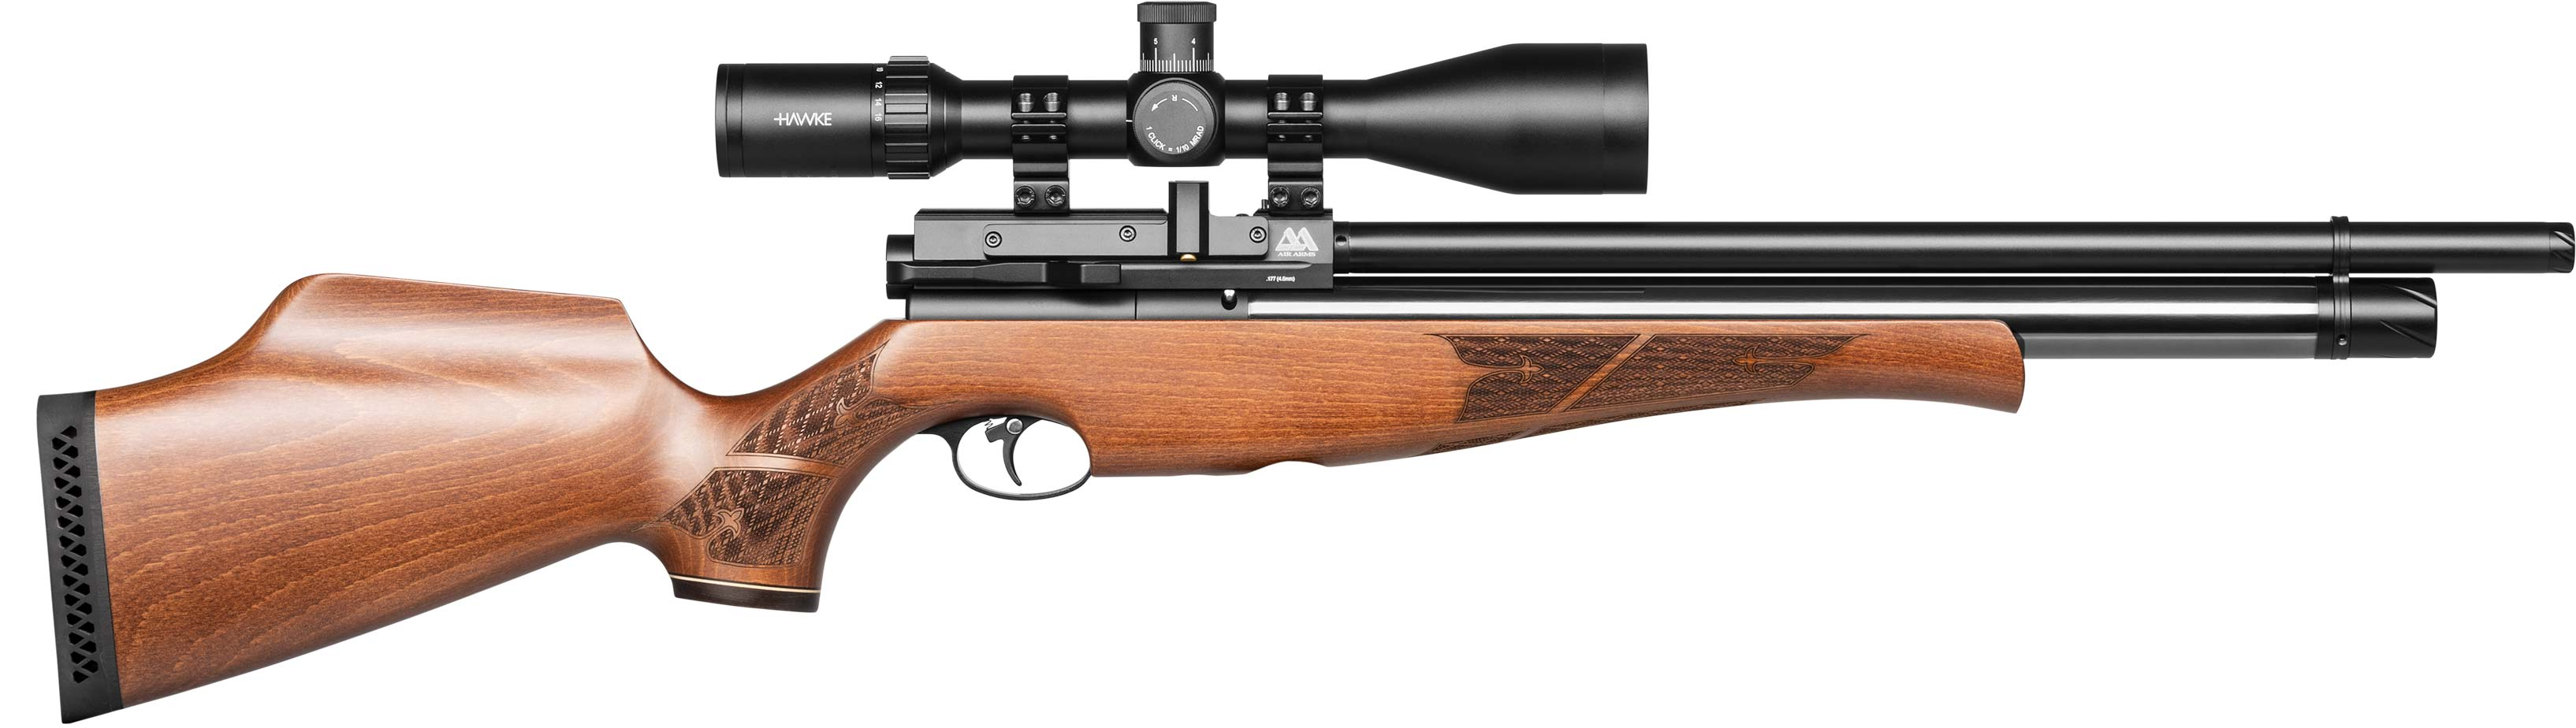 Air Arms - S510 Carbine Beech